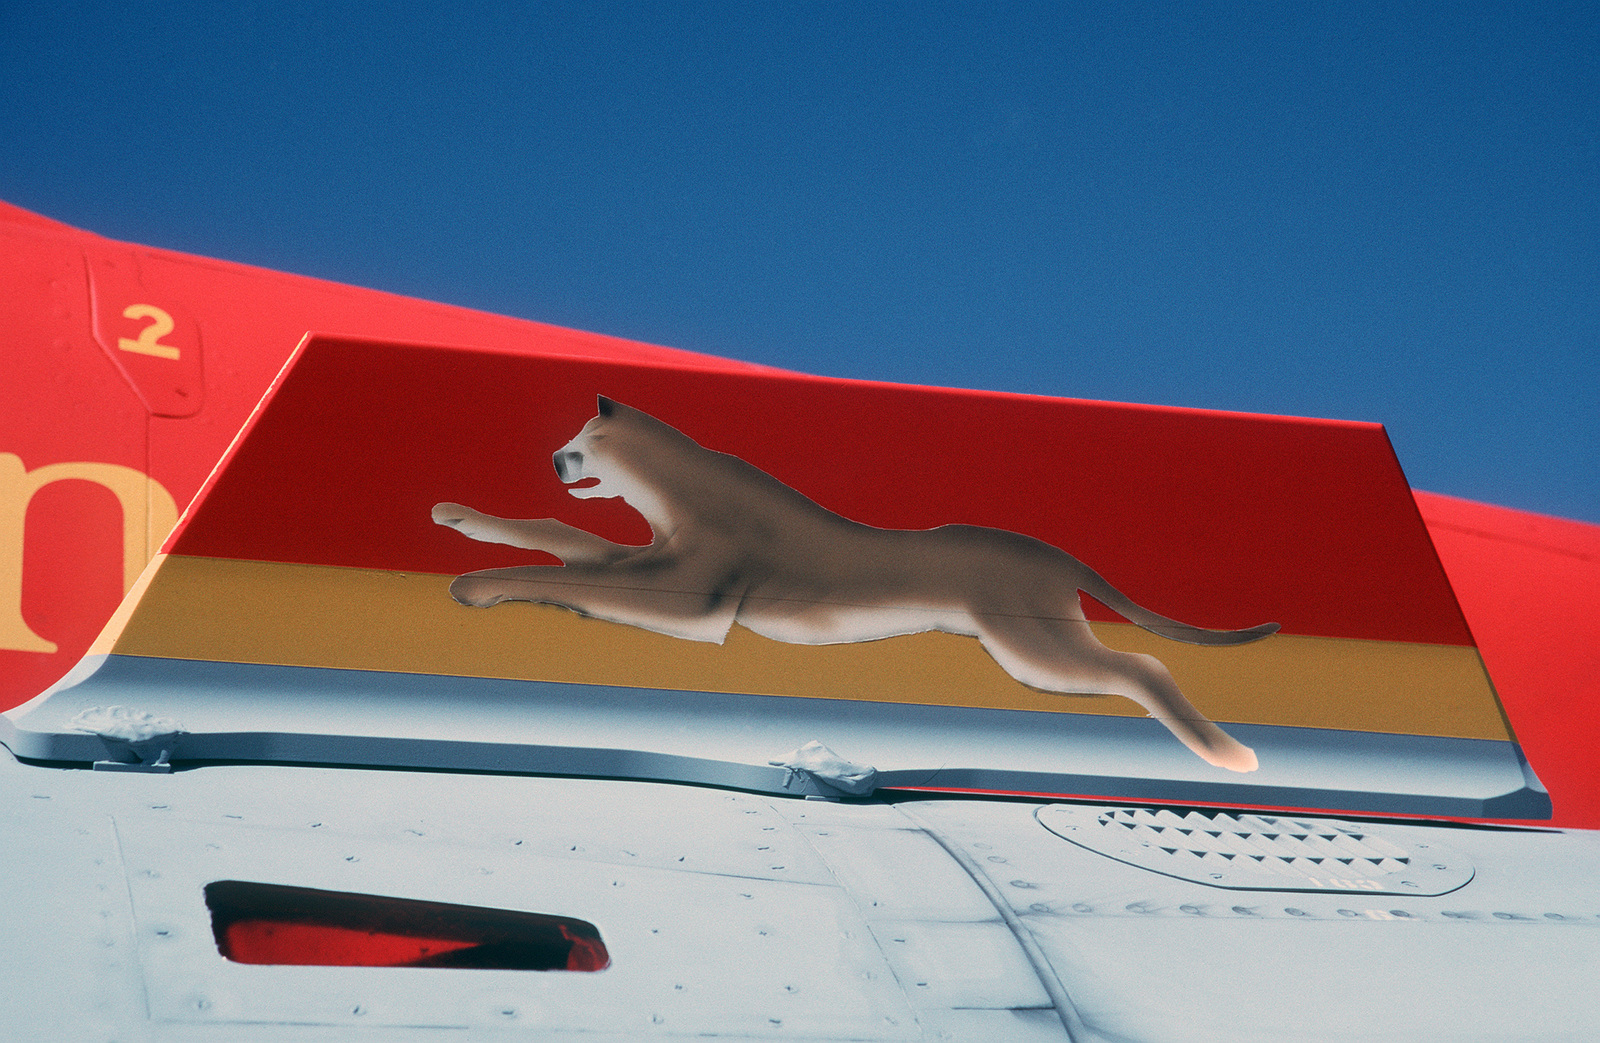 Close up view show a leaping cougar painted on the wing fence of a Canadian Armed Forces (CFA) CF-188B aircraft the 410 Tactical Fighter (Operational Training) Squadron during Tiger Meet of the Americas. The Inaugural Tiger Meet of the Americas brought together flying units from throughout North America that have a Tiger or large cat as their unit symbol. The Tiger Meet of the Americas closely resembles the North Atlantic Treaty Organization (NATO)/Europe Tiger Meet in its goal of fostering camaraderie, teamwork and tactics familiarization